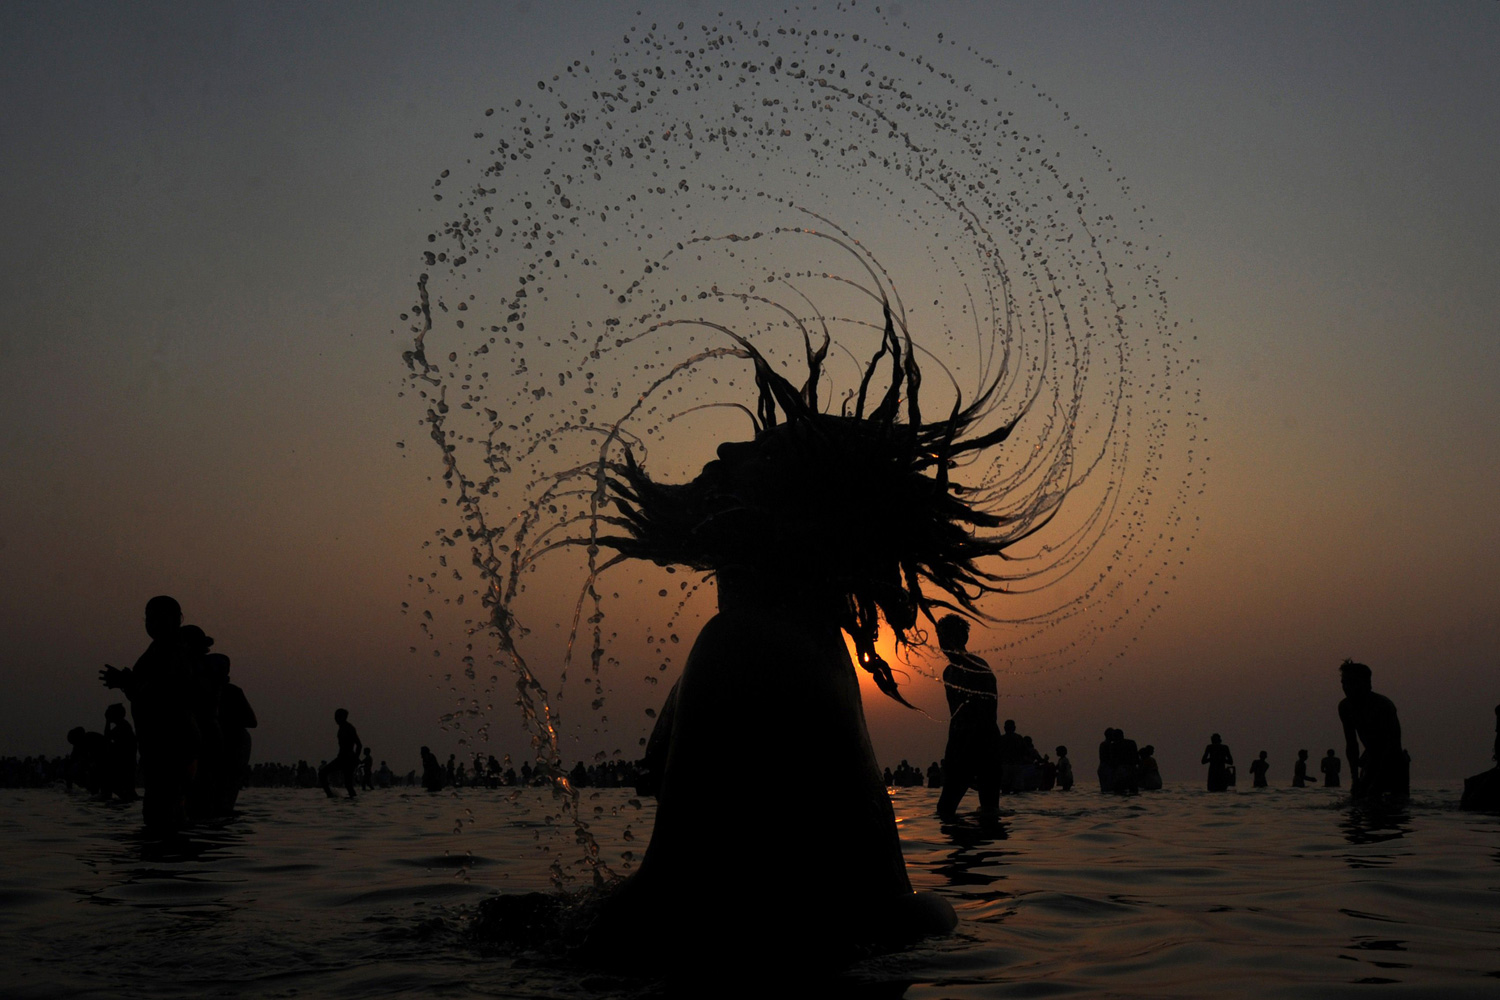 January 15, 2012. An Indian Sadhu (Hindu holy man) takes a dip in the sea at Gangasagar, about 155 kms south of Kolkata. Some four hundred thousand Hindu pilgrims gathered at the Gangasagar Mela (Fair) to take a dip in the ocean at the confluence of the River Ganges and the Bay of Bengal, on the occasion of Makar Sankranti, a holy day of the Hindu calendar considered to be of great religious significance in Hindu mythology.